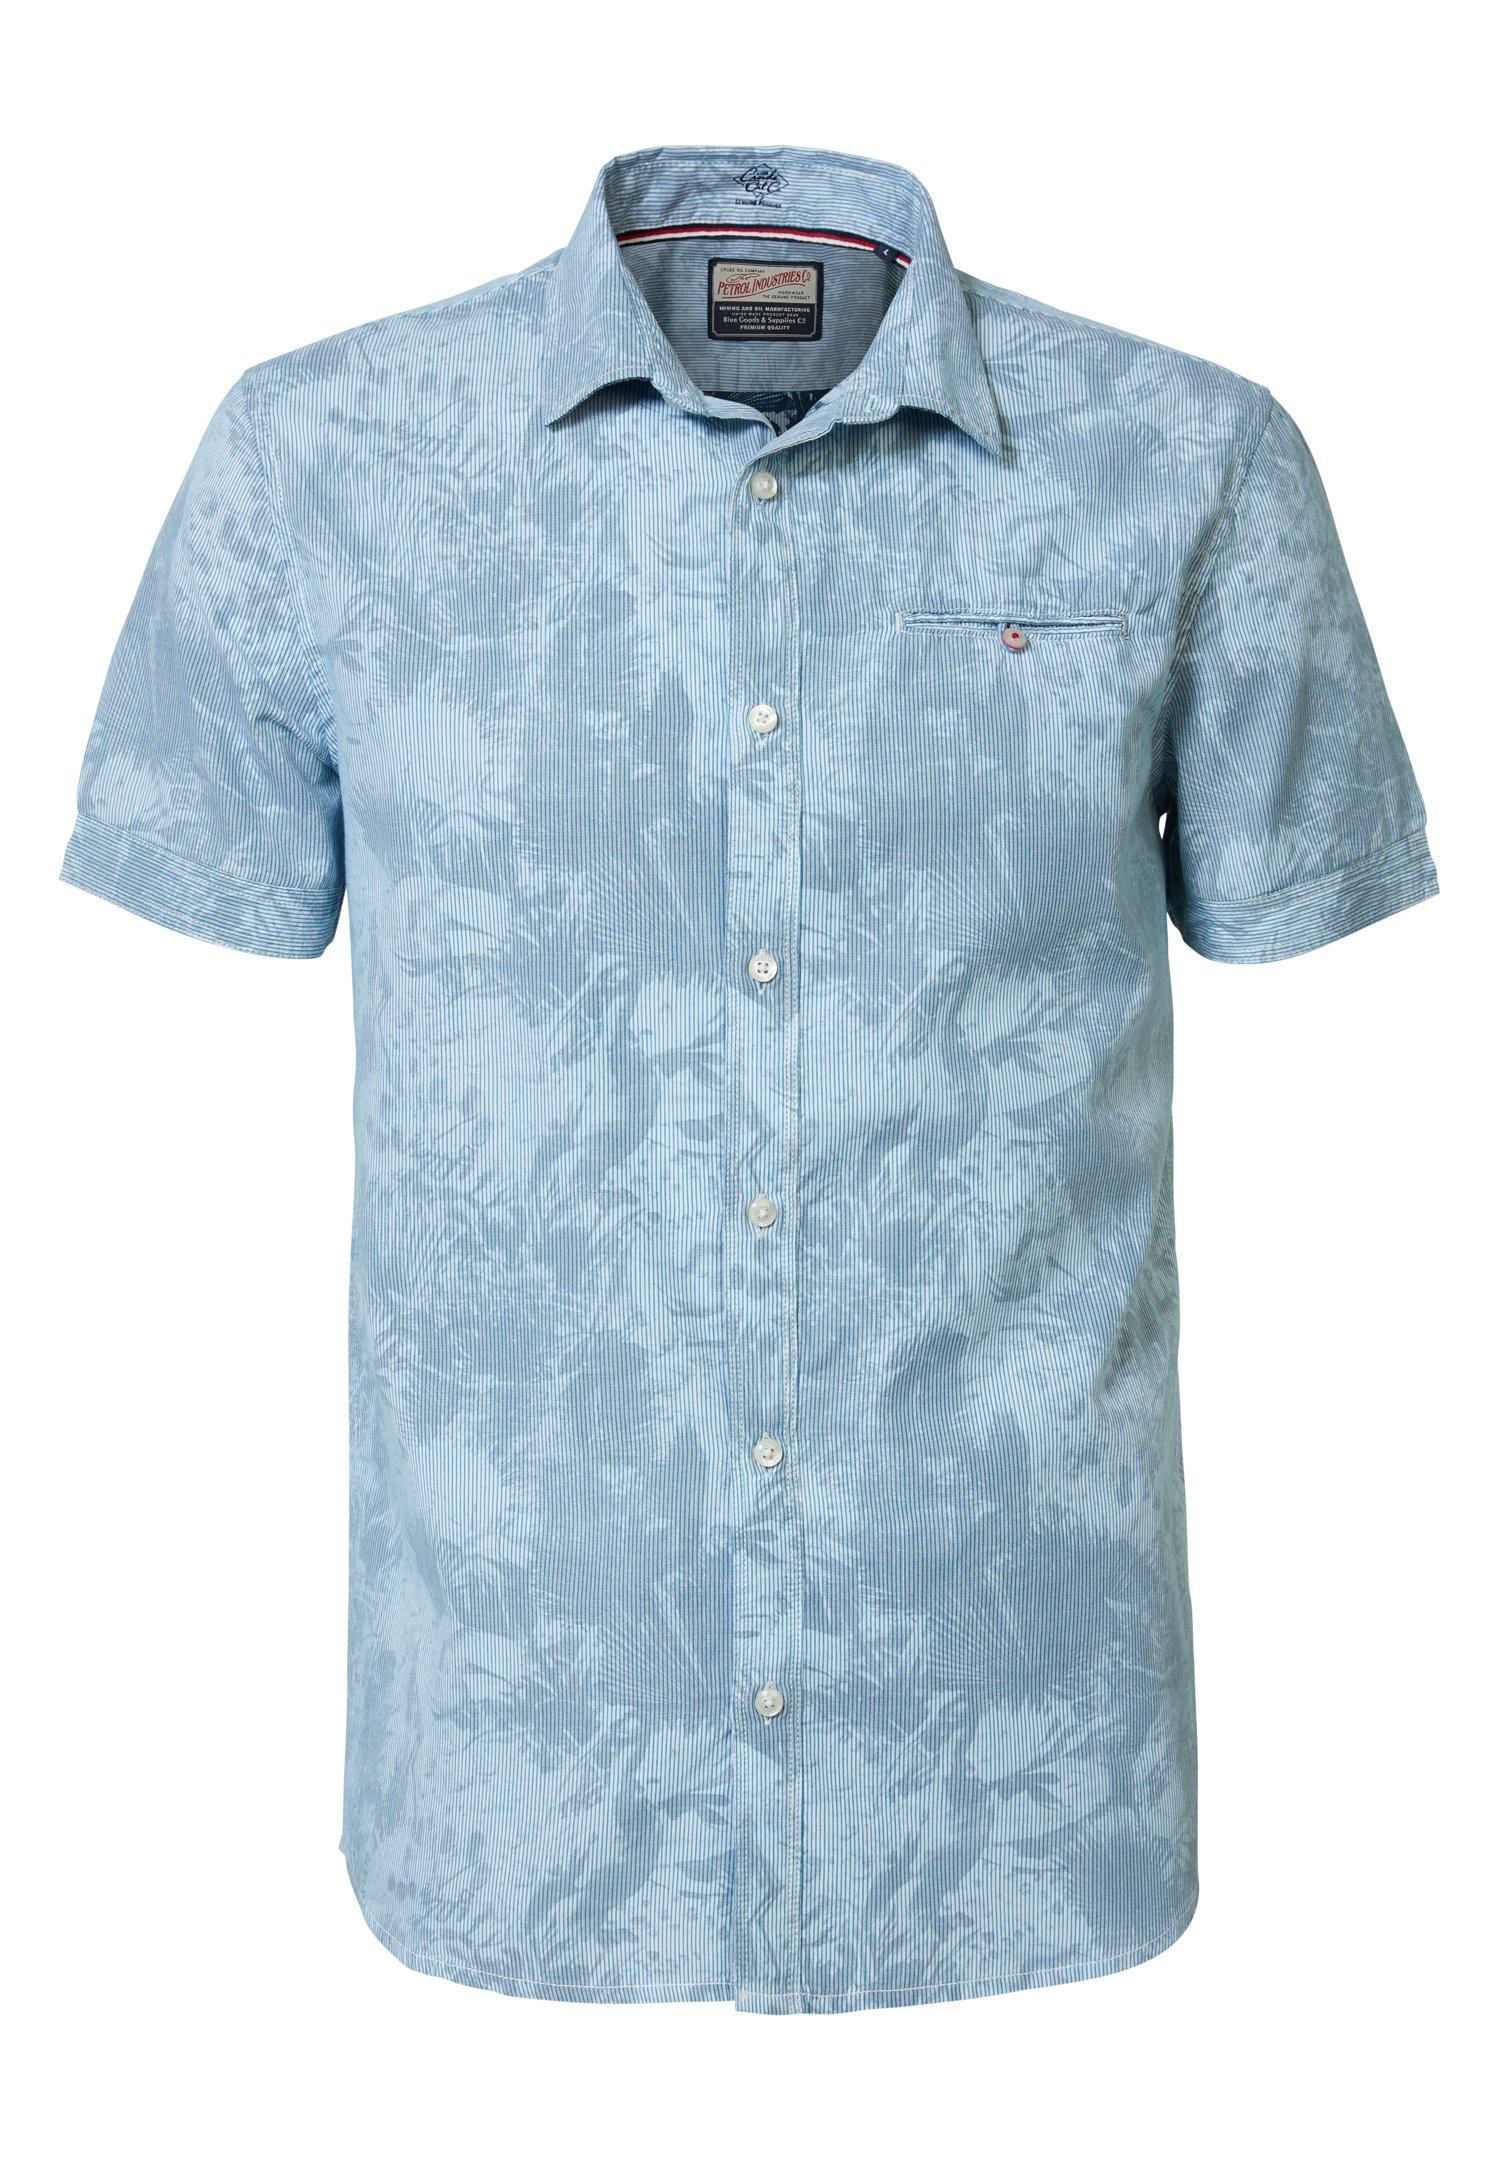 Petrol Industries Camicia - Faded Turquoise gbFLk